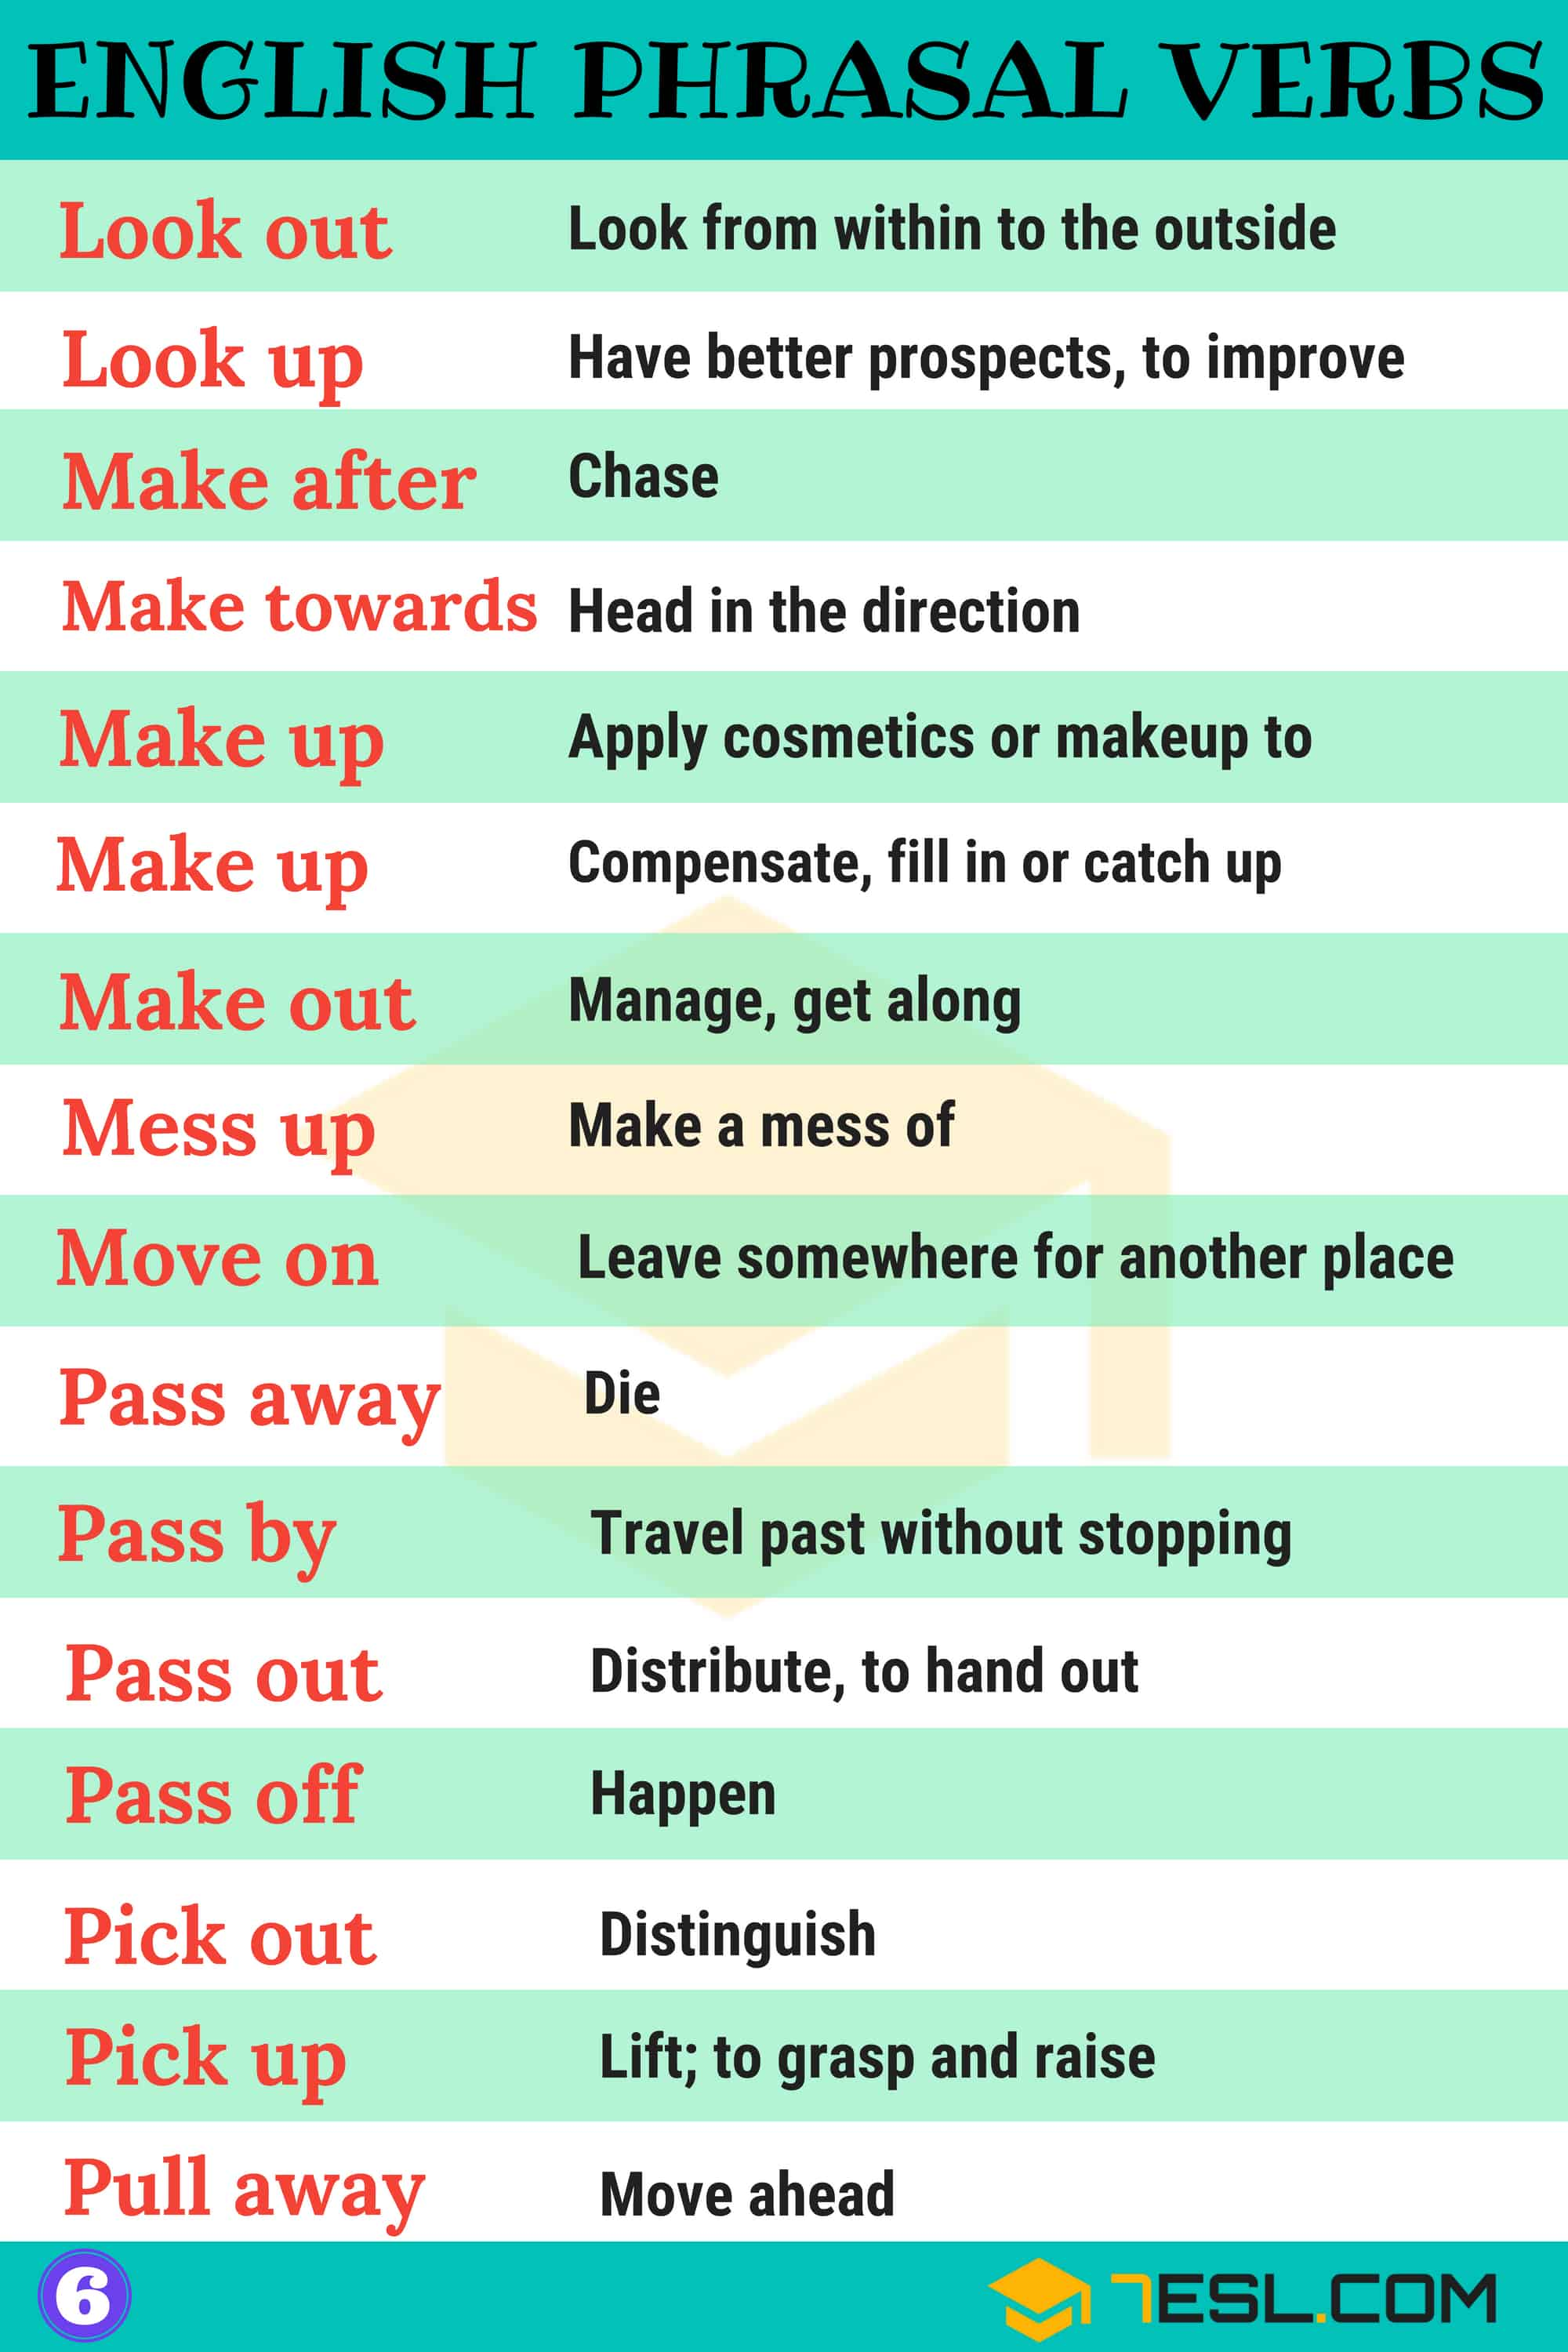 Commonly Used English Phrasal Verbs List | Image 6